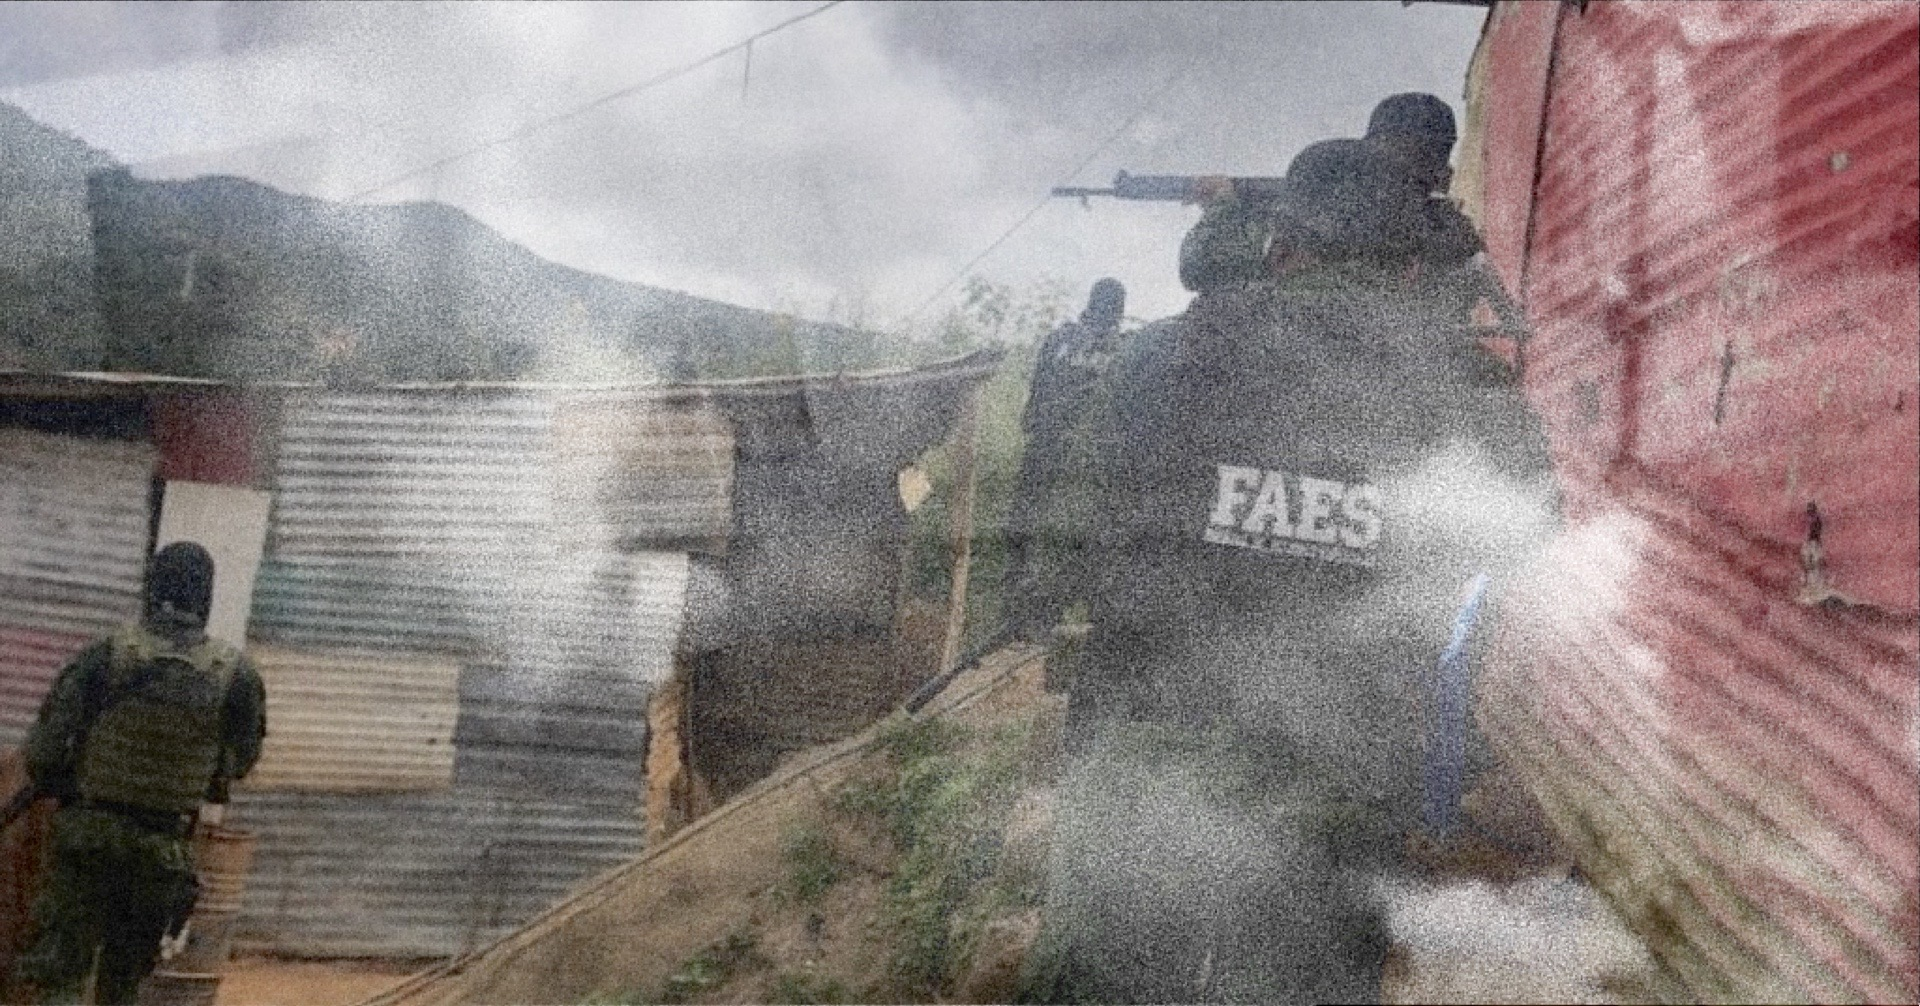 Putting Out Fires with Gasoline: How Police Brutality in Caracas Is Making Things Worse